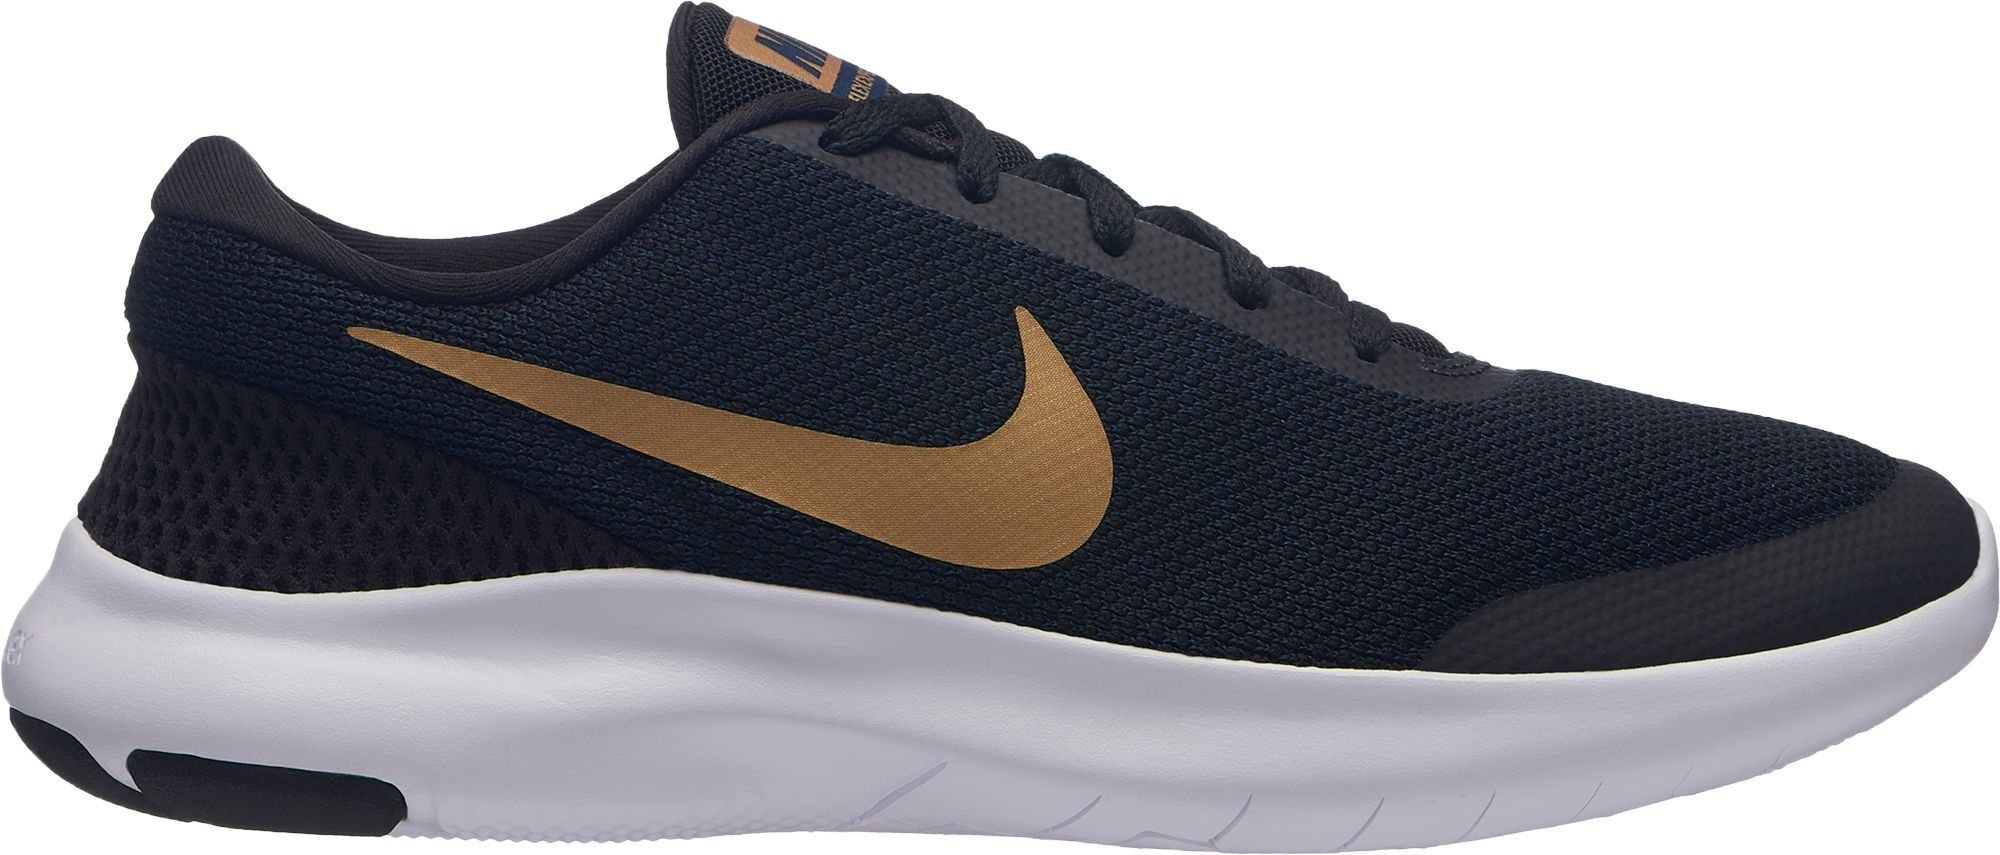 Nike Women's Flex Experience RN 7 Running Shoes, Size: 6.0